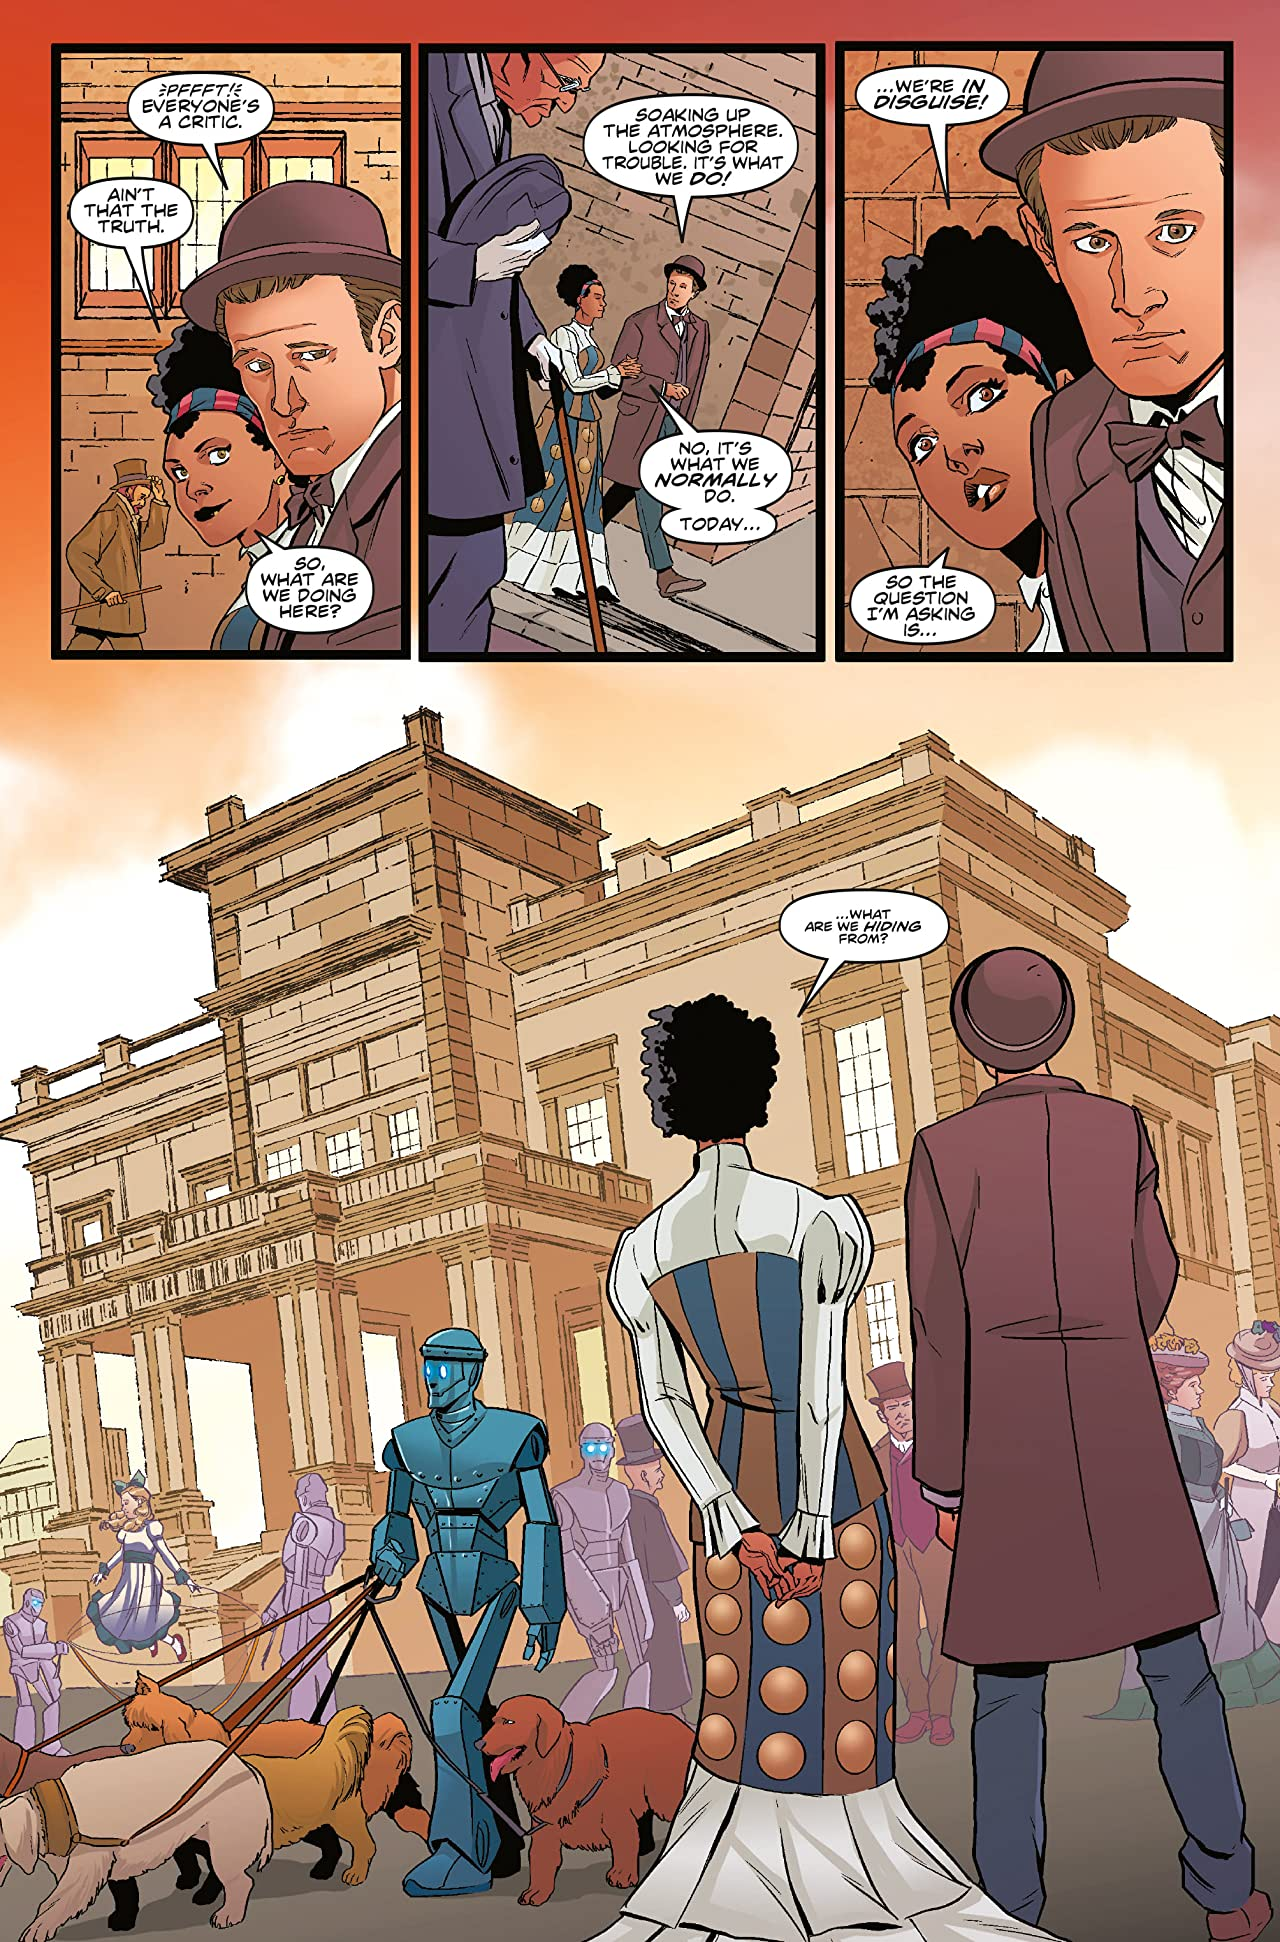 Doctor Who: The Road to the Thirteenth Doctor #2: The Eleventh Doctor